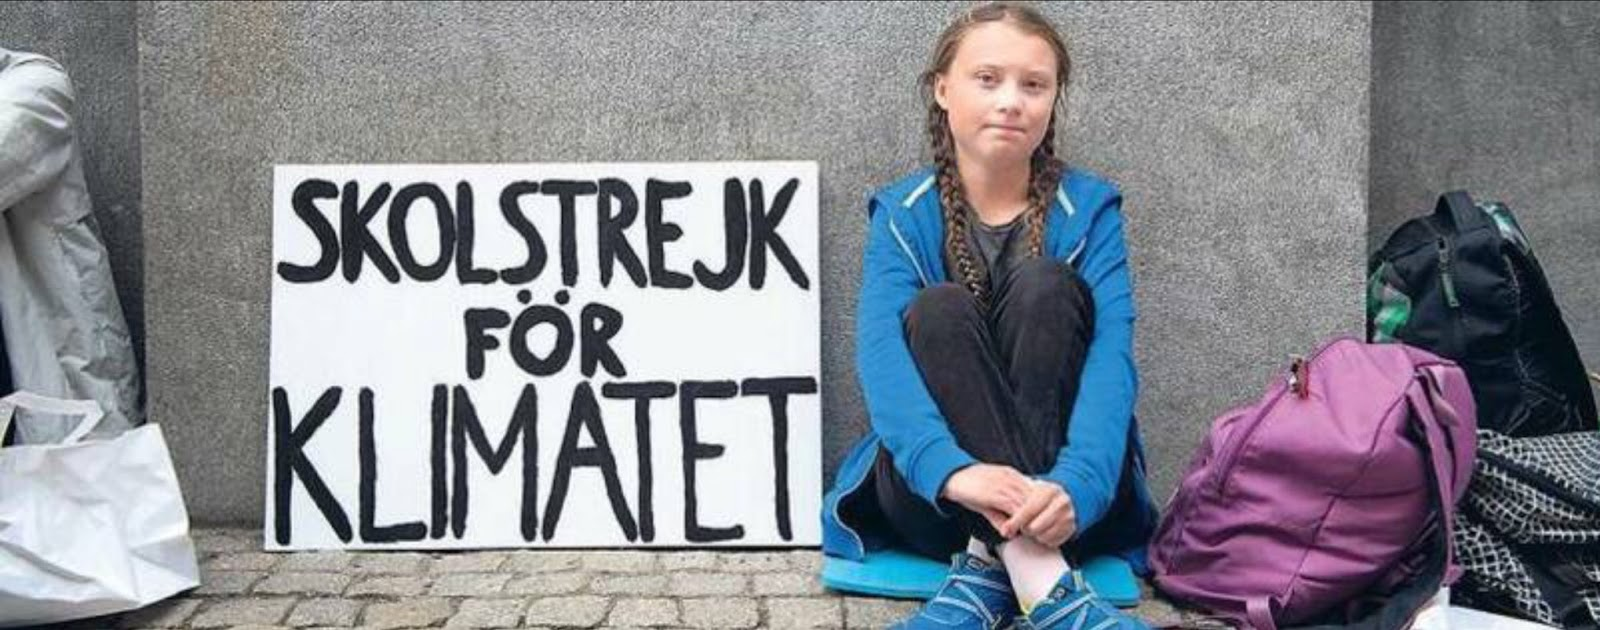 greta thumberg fridays for future cme 2019